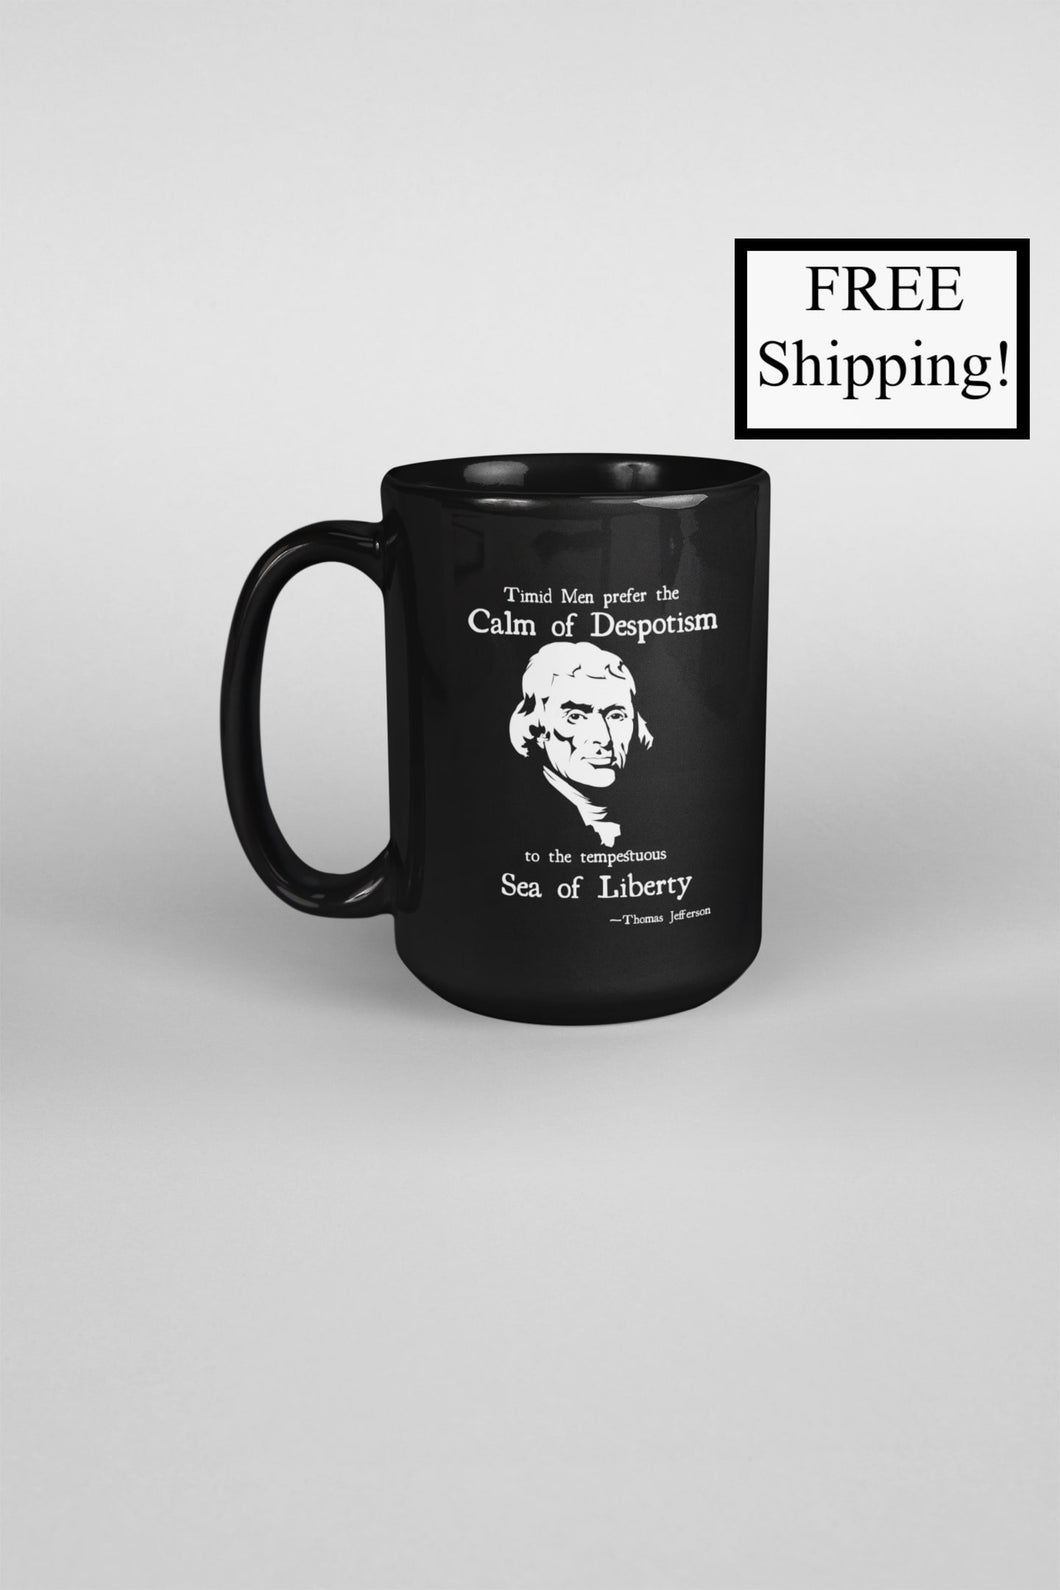 Thomas Jefferson Sea of Liberty 15oz Mug